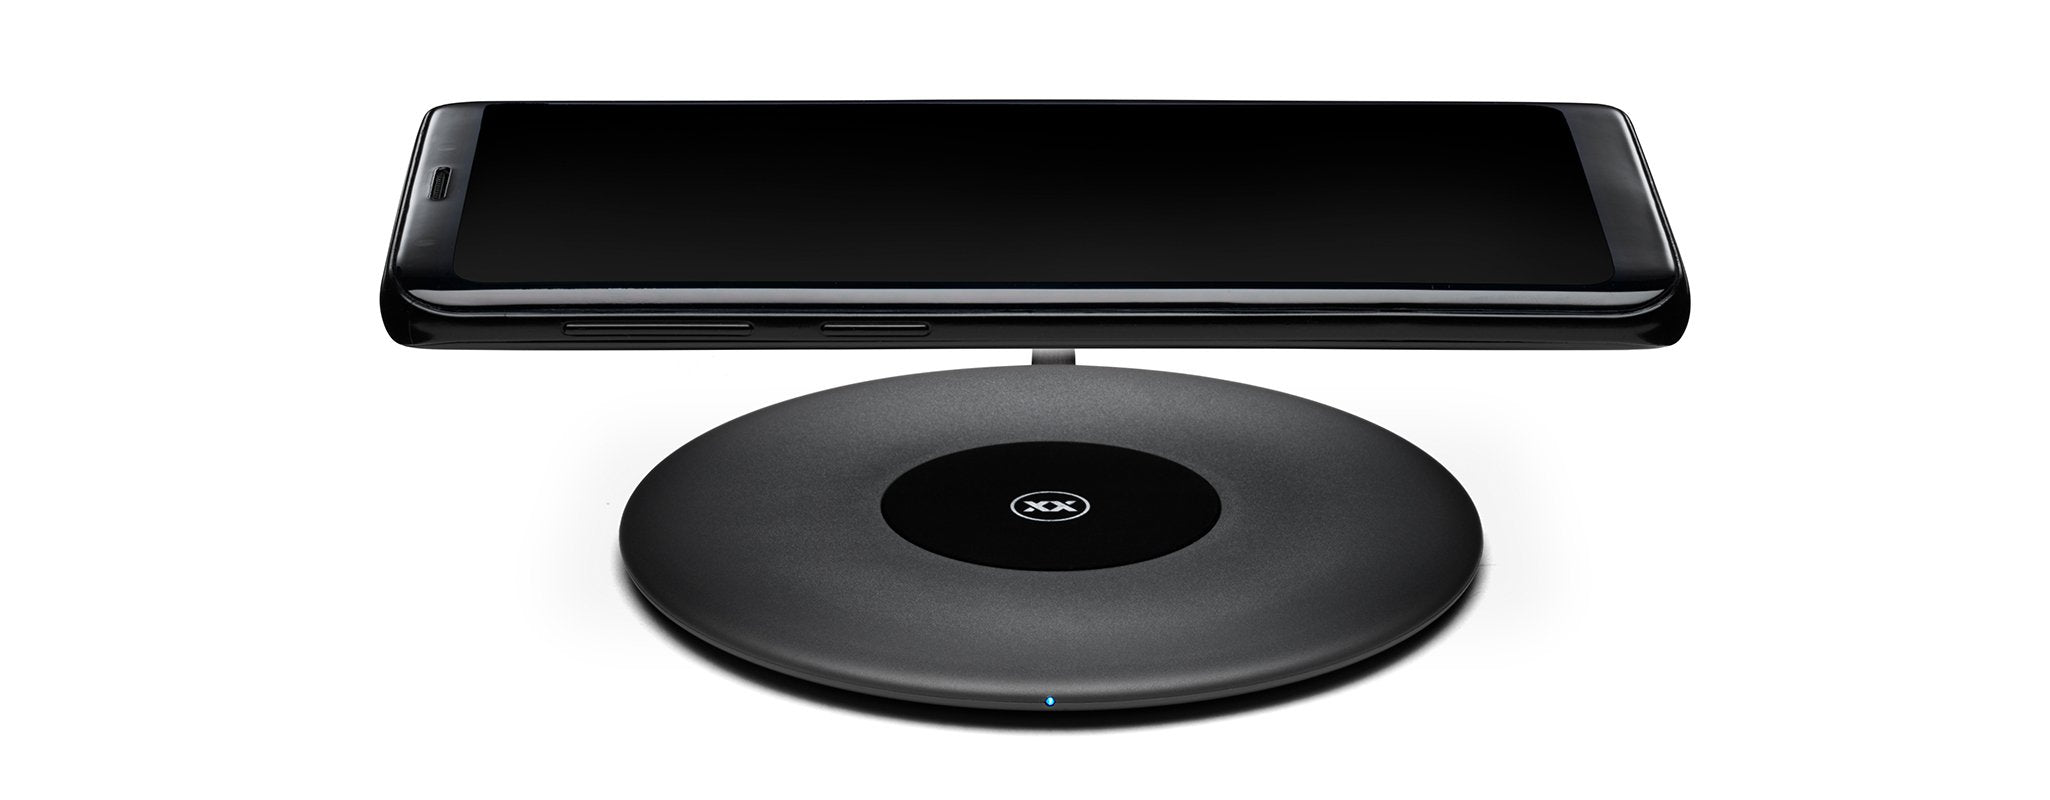 Chargespot wireless charger for Android and iPhone